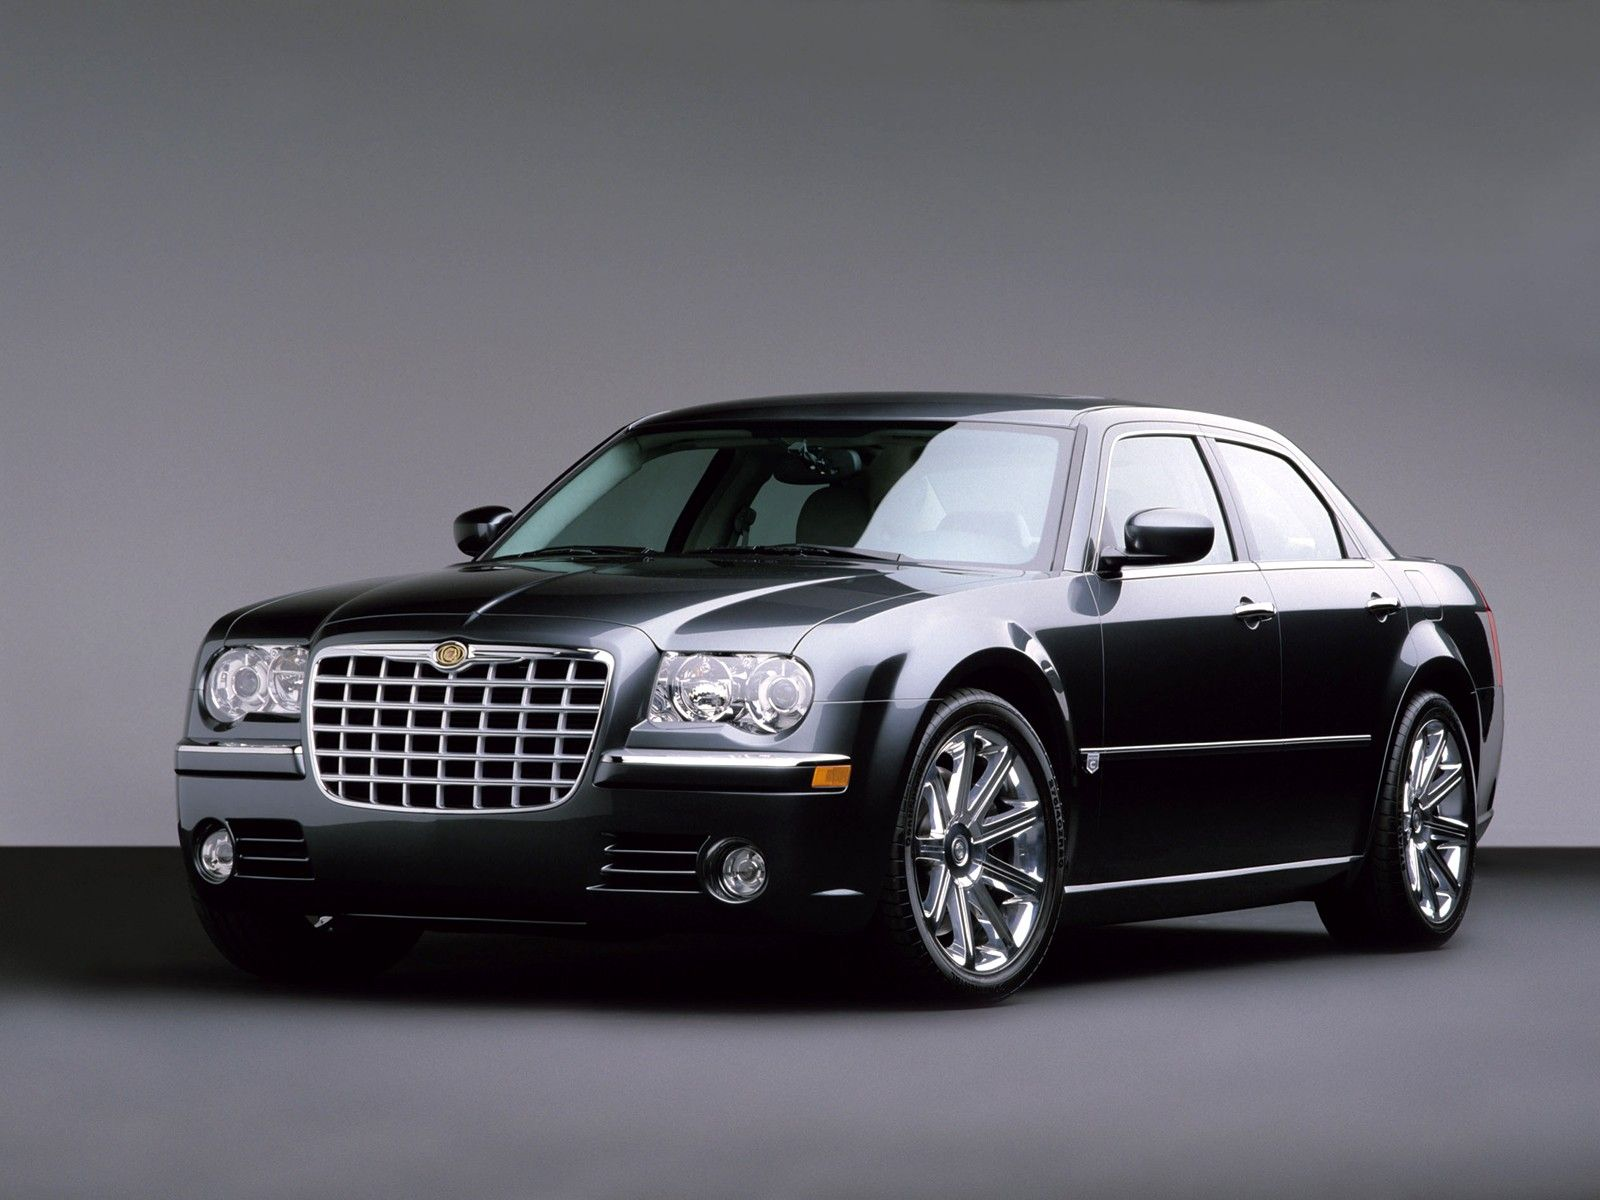 small resolution of chrysler 300 my small dream car